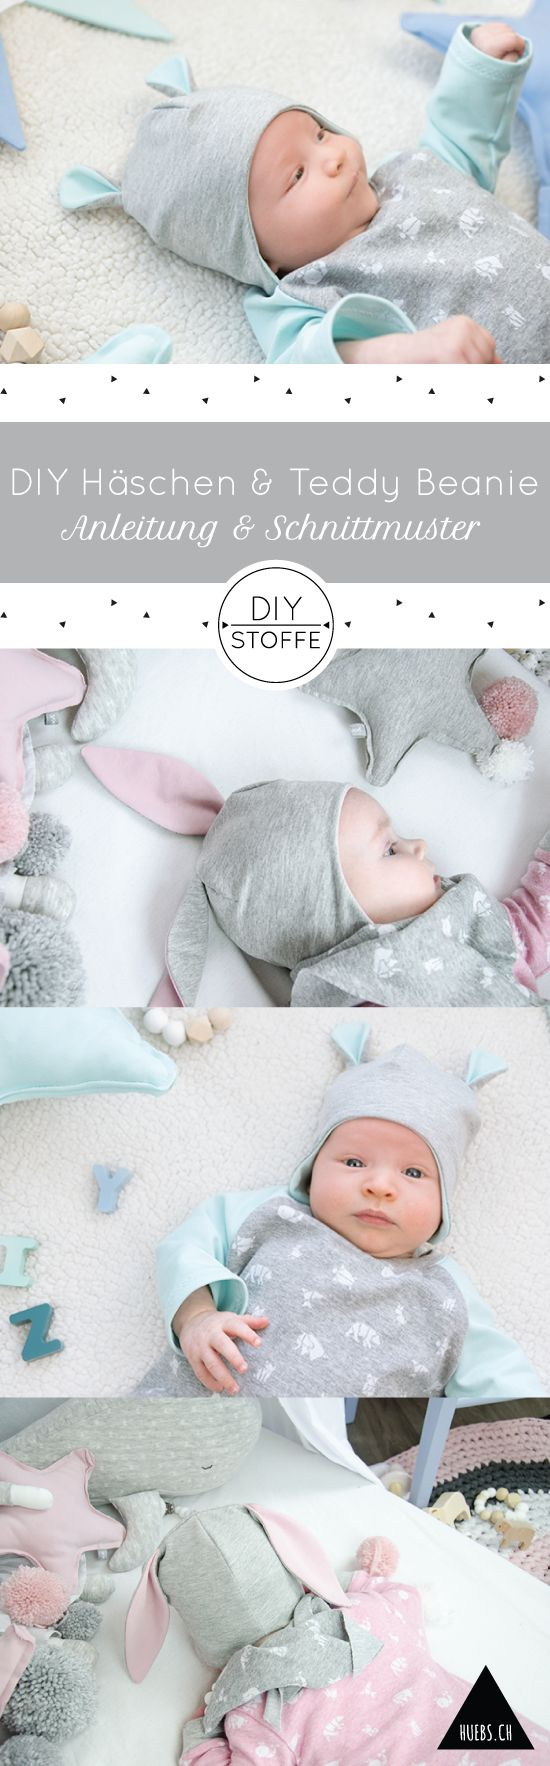 632 best *** Babykram nähen images on Pinterest | Sewing, Sewing ...